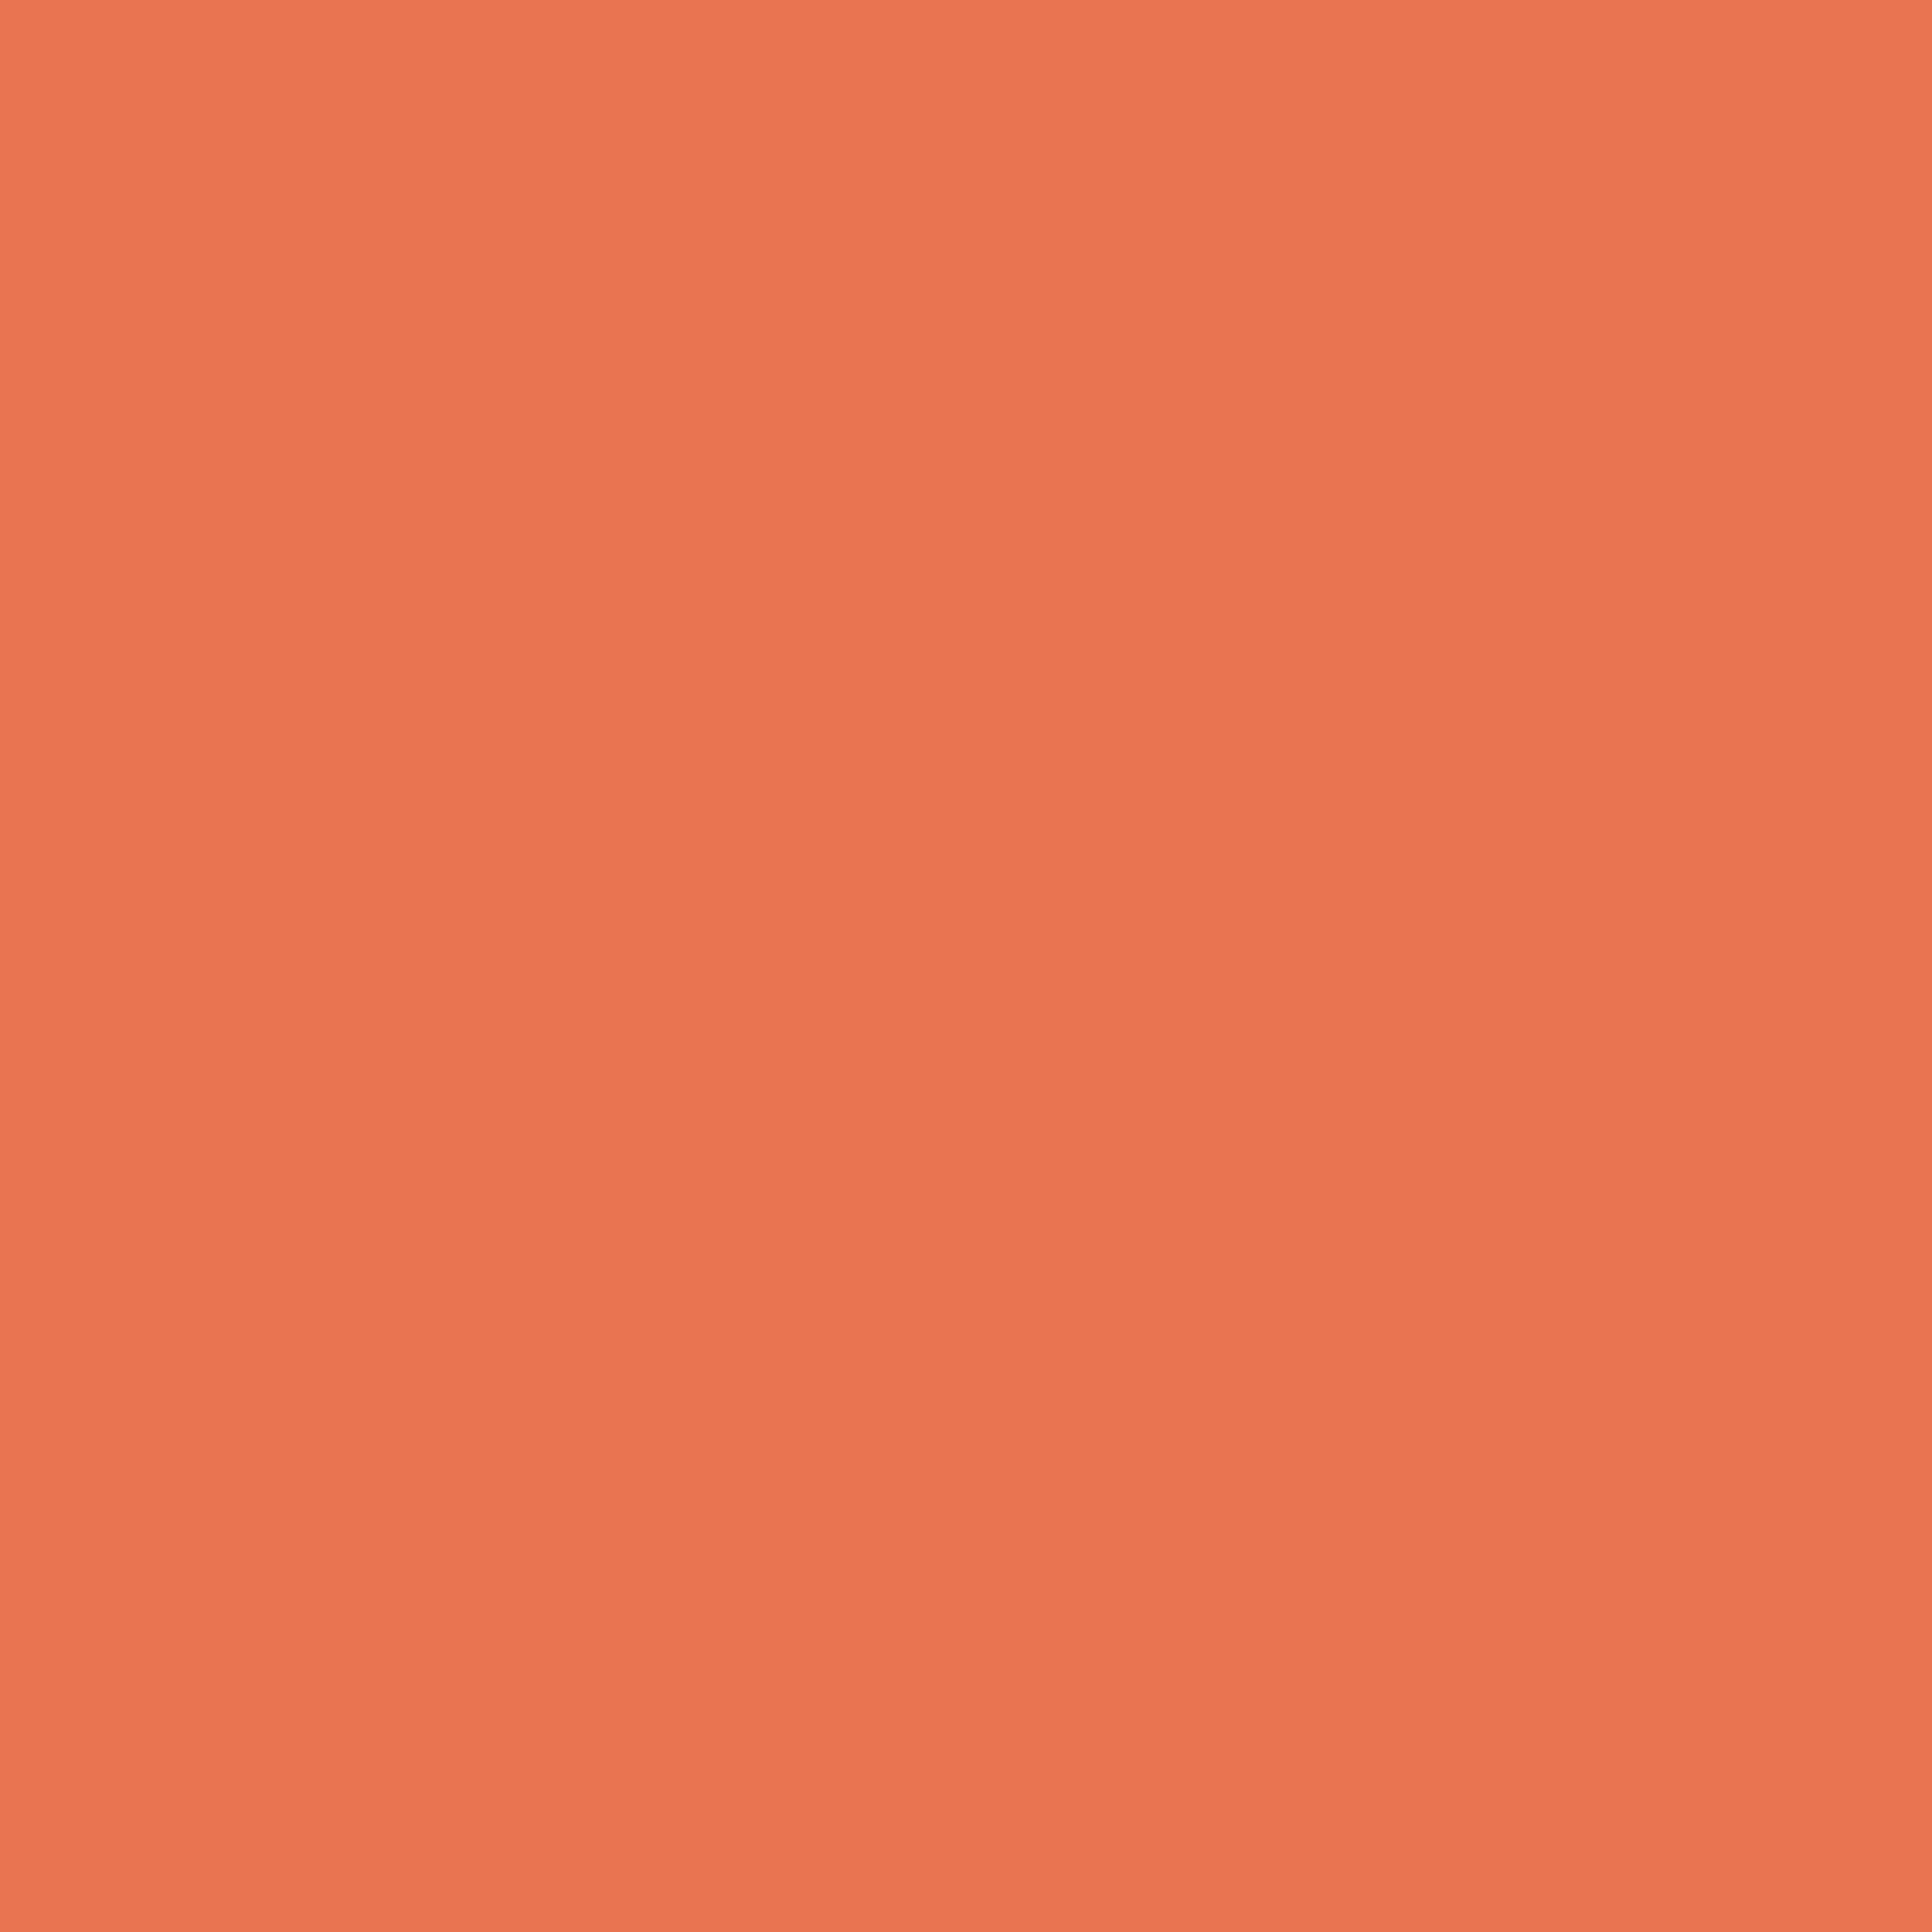 2048x2048 Burnt Sienna Solid Color Background